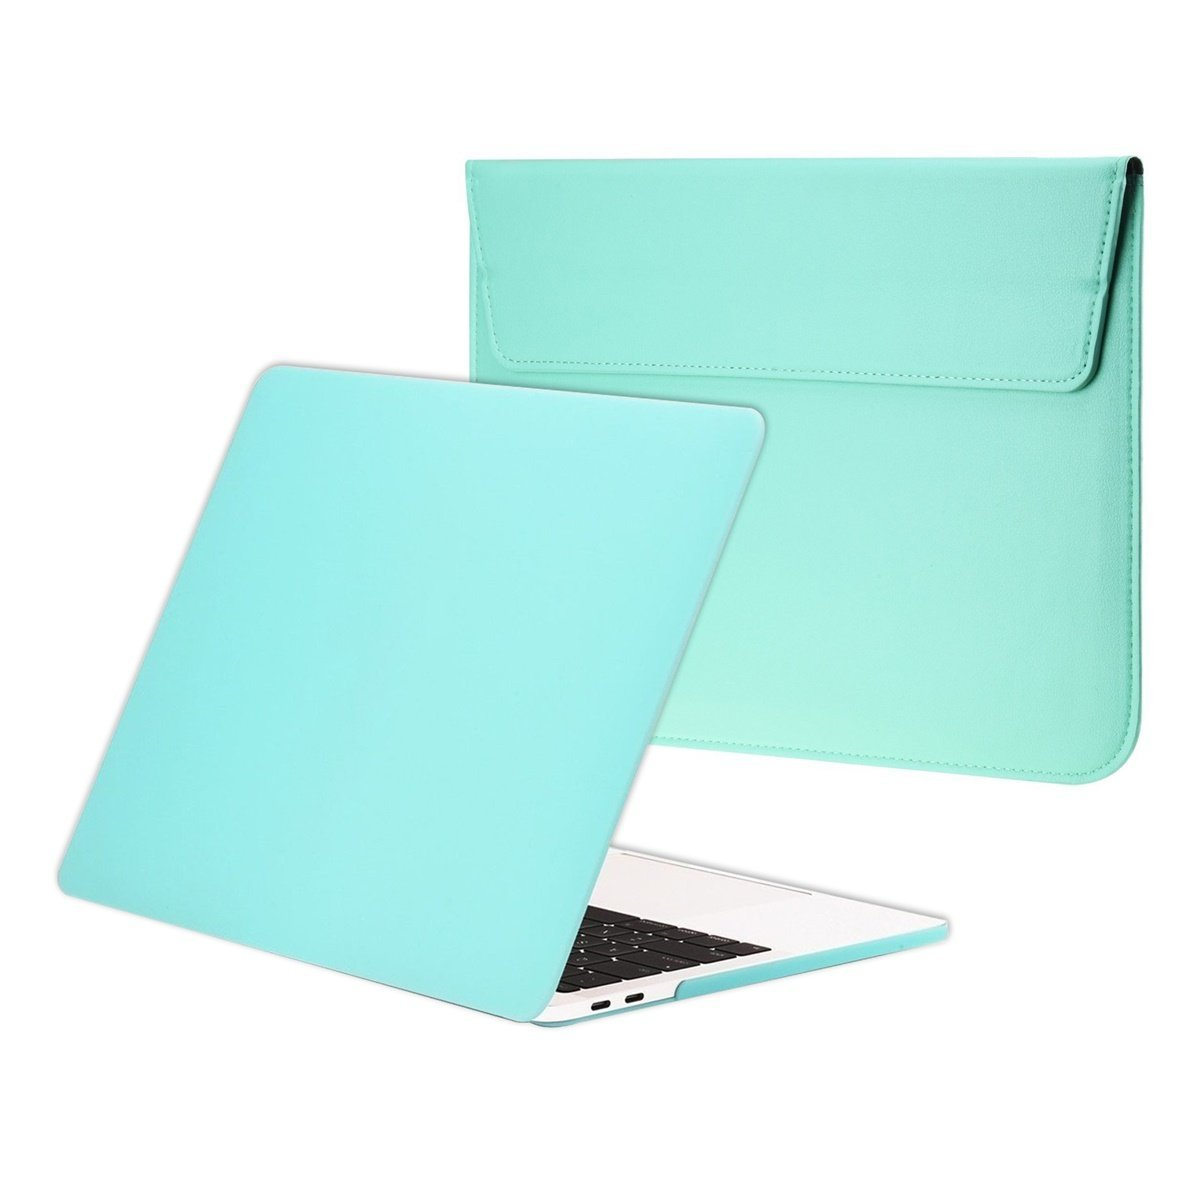 TOP CASE - Essential 2 in 1 Rubberized Hard Case + Leather Sleeve Bag Compatiable with MacBook Pro 13-inch A1989,A1706 with Touch Bar/A1708 Without Touch Bar(Release 2017,2016,2018)- Hot Blue by TOP CASE (Image #1)